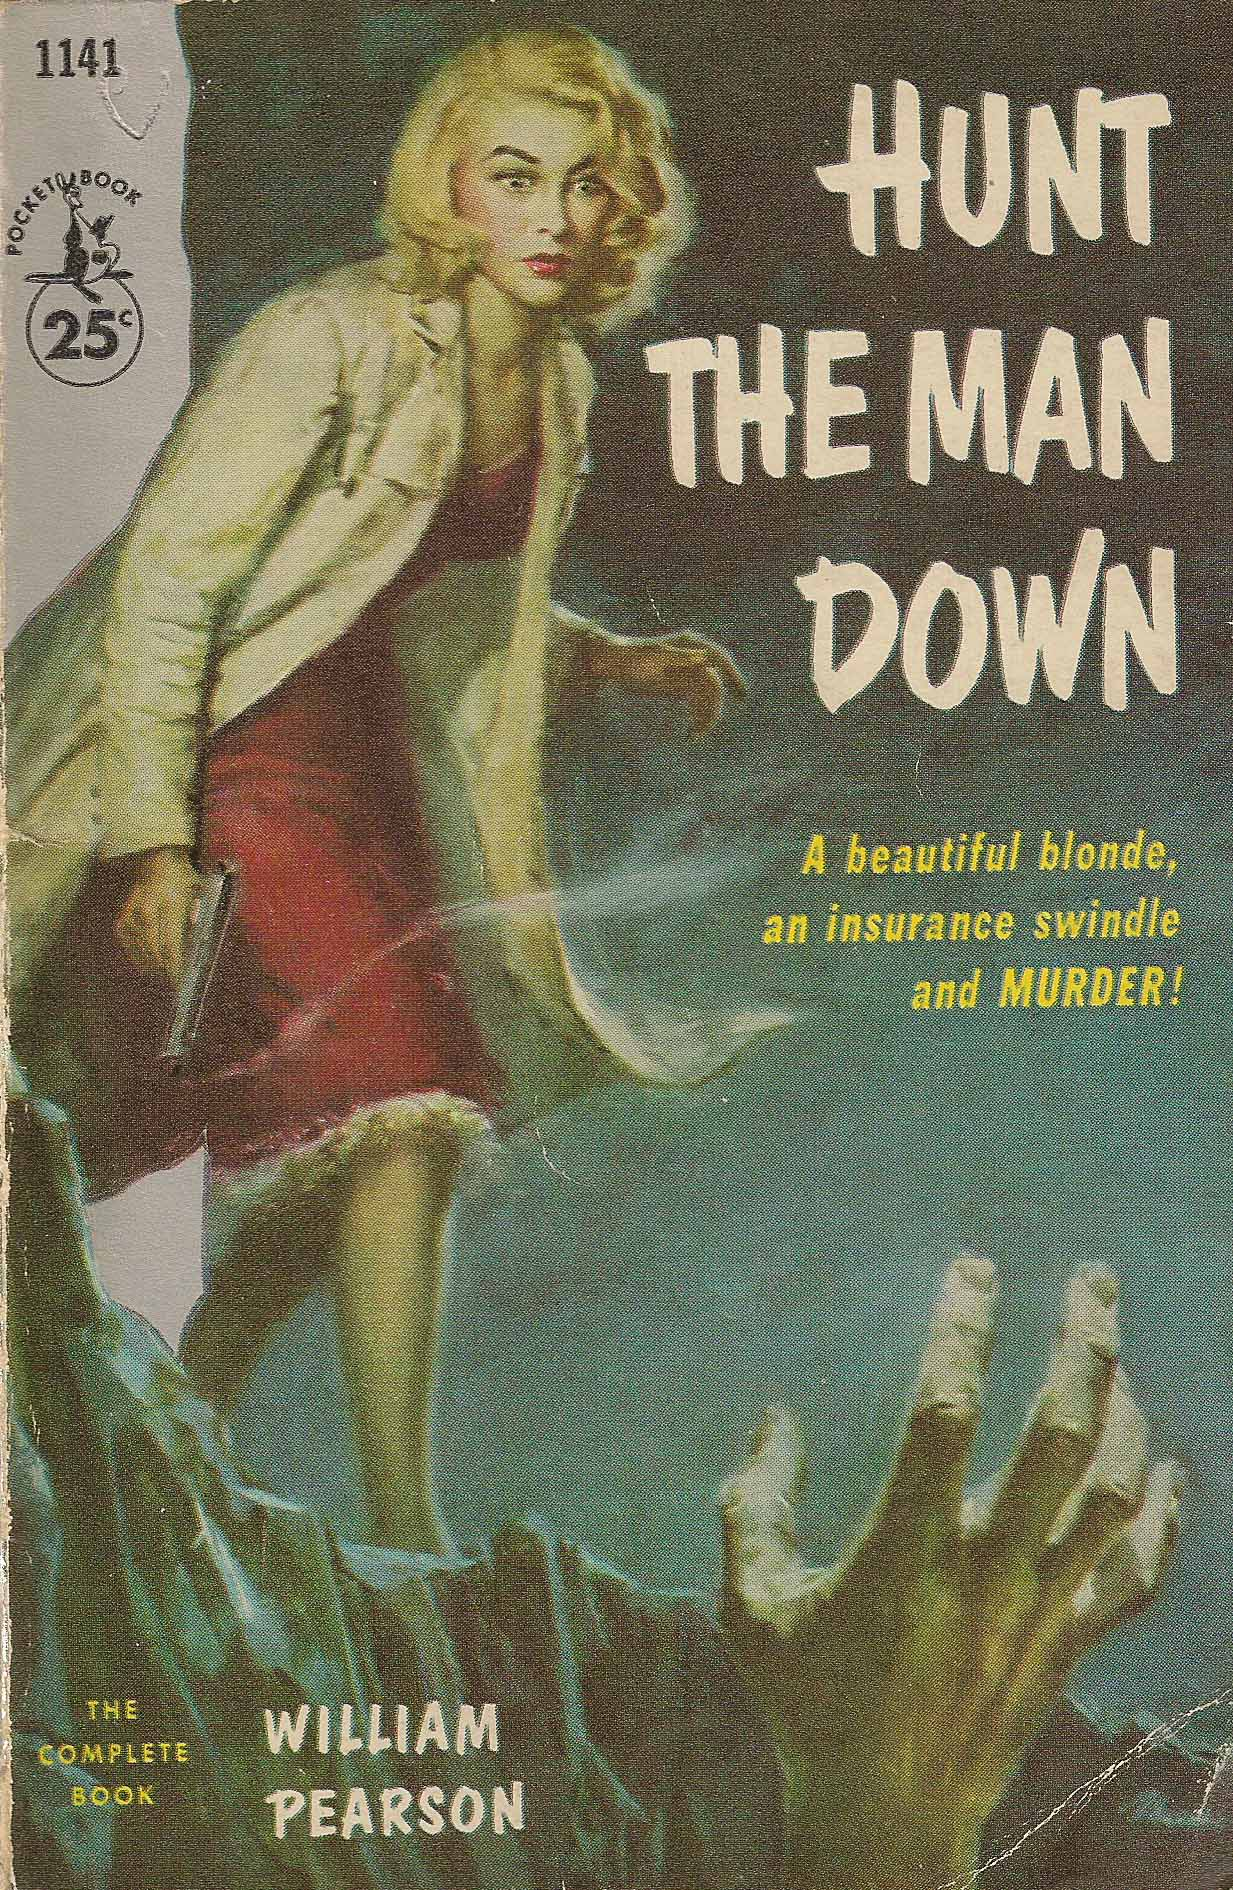 Image result for hunt the man down pulp cover